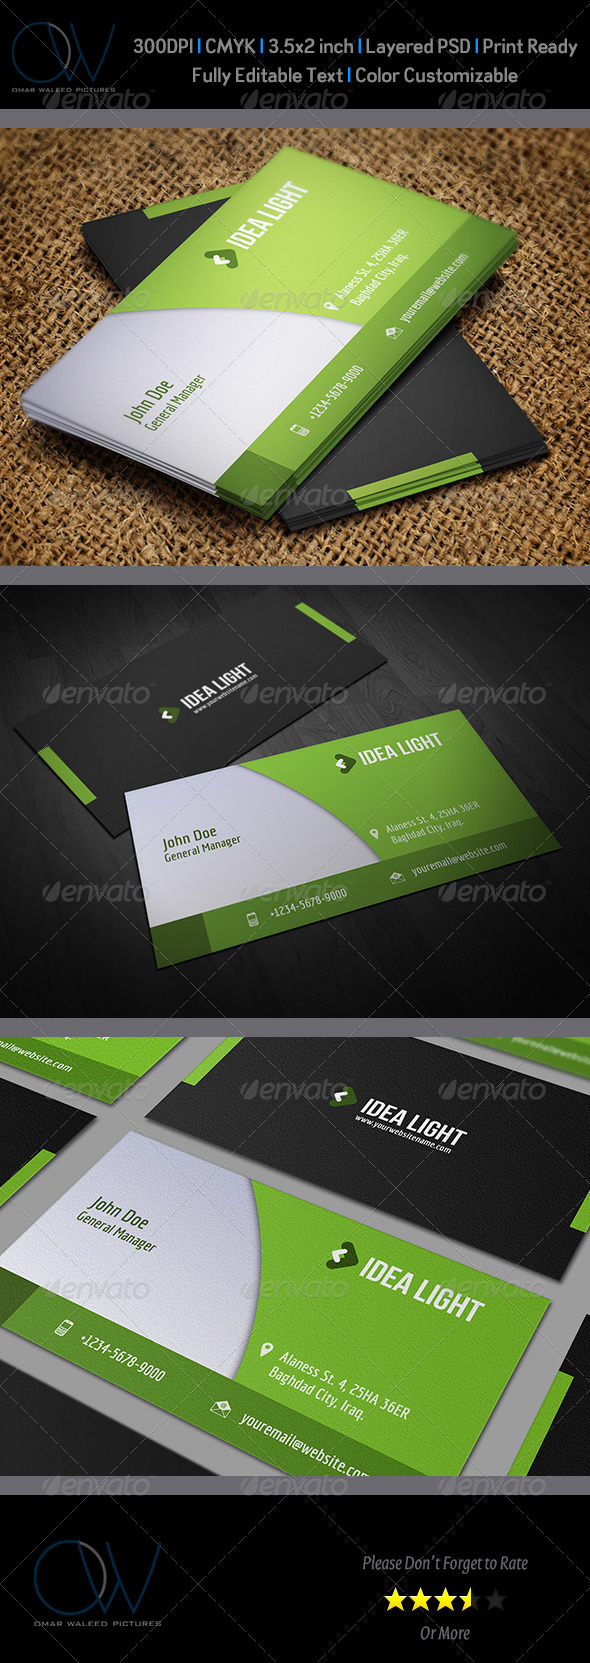 Corporate Business Card Vol.18 - Corporate Business Cards